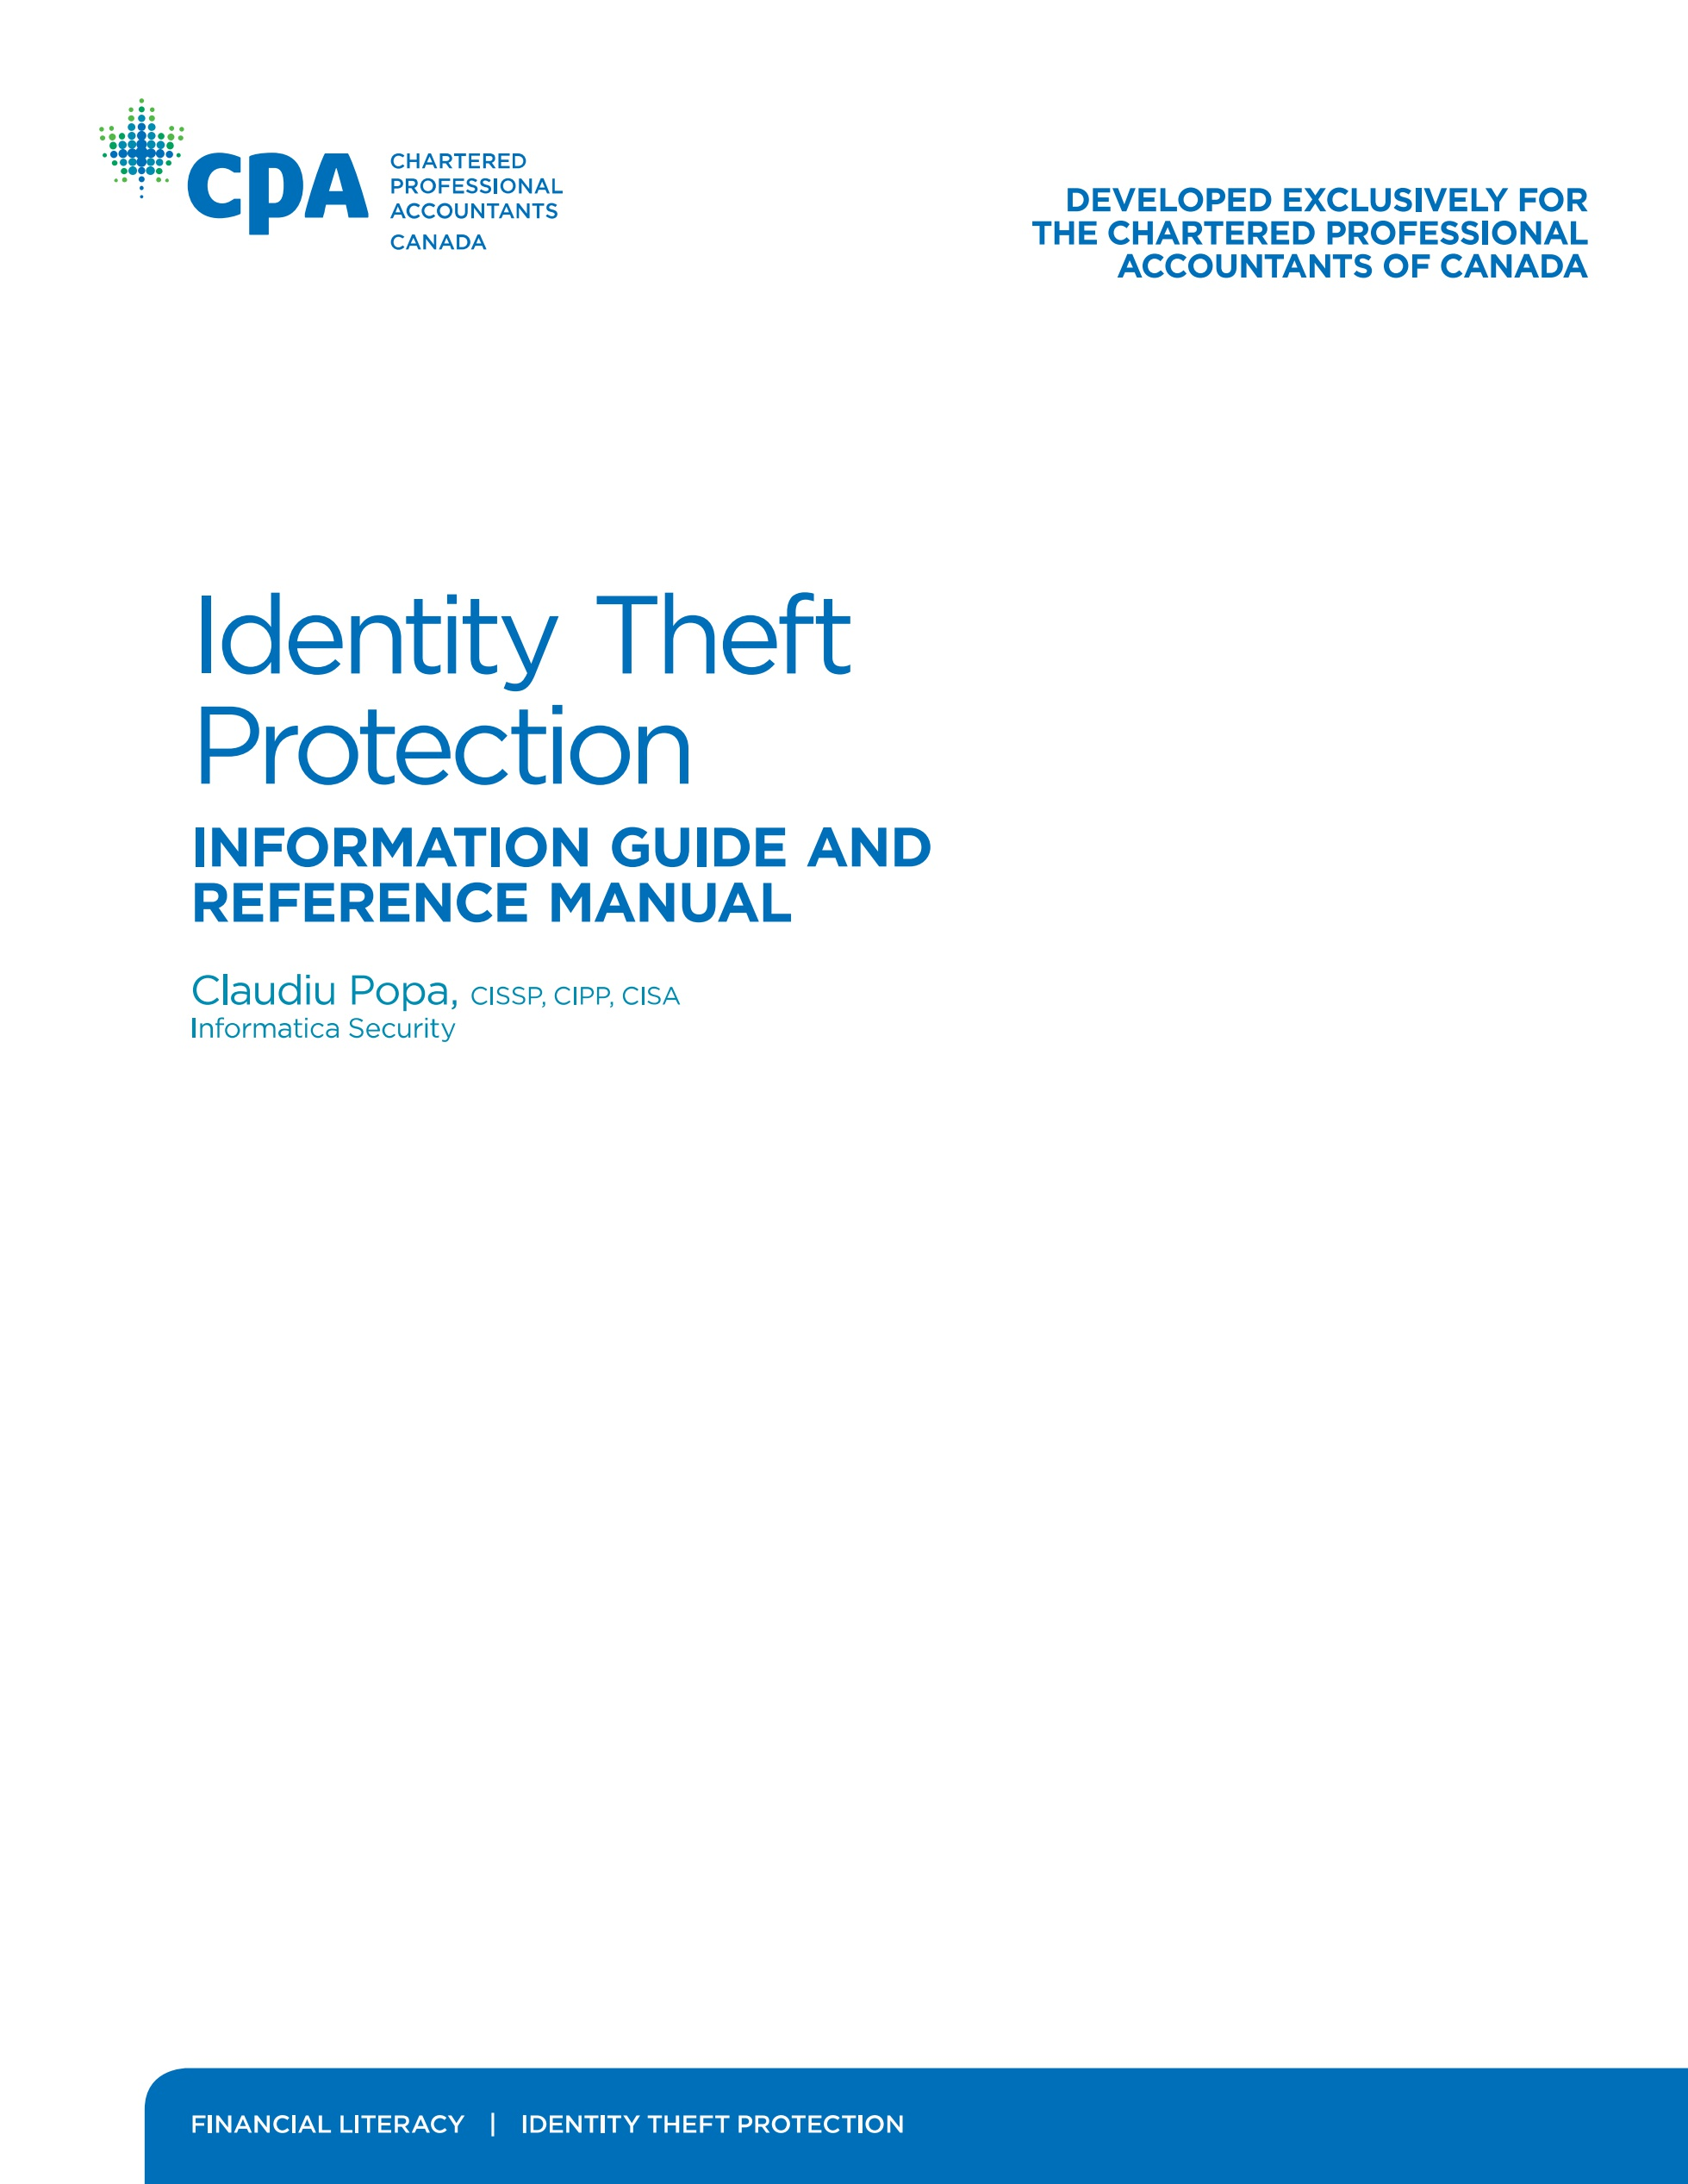 Identity Theft Protection: Informati